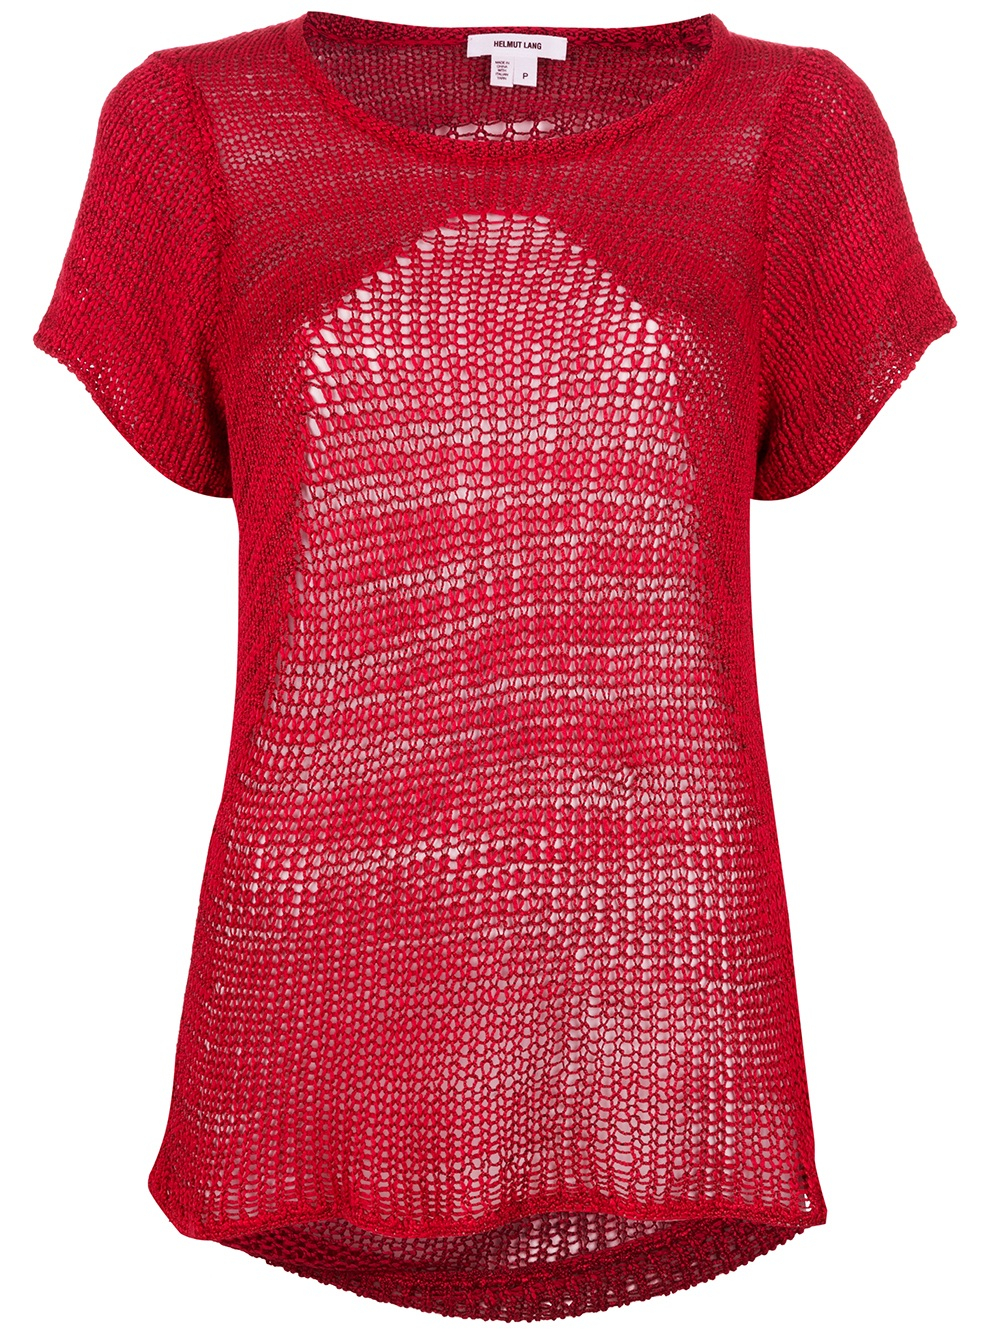 Helmut lang Marled Short Sleeve Sweater in Red | Lyst